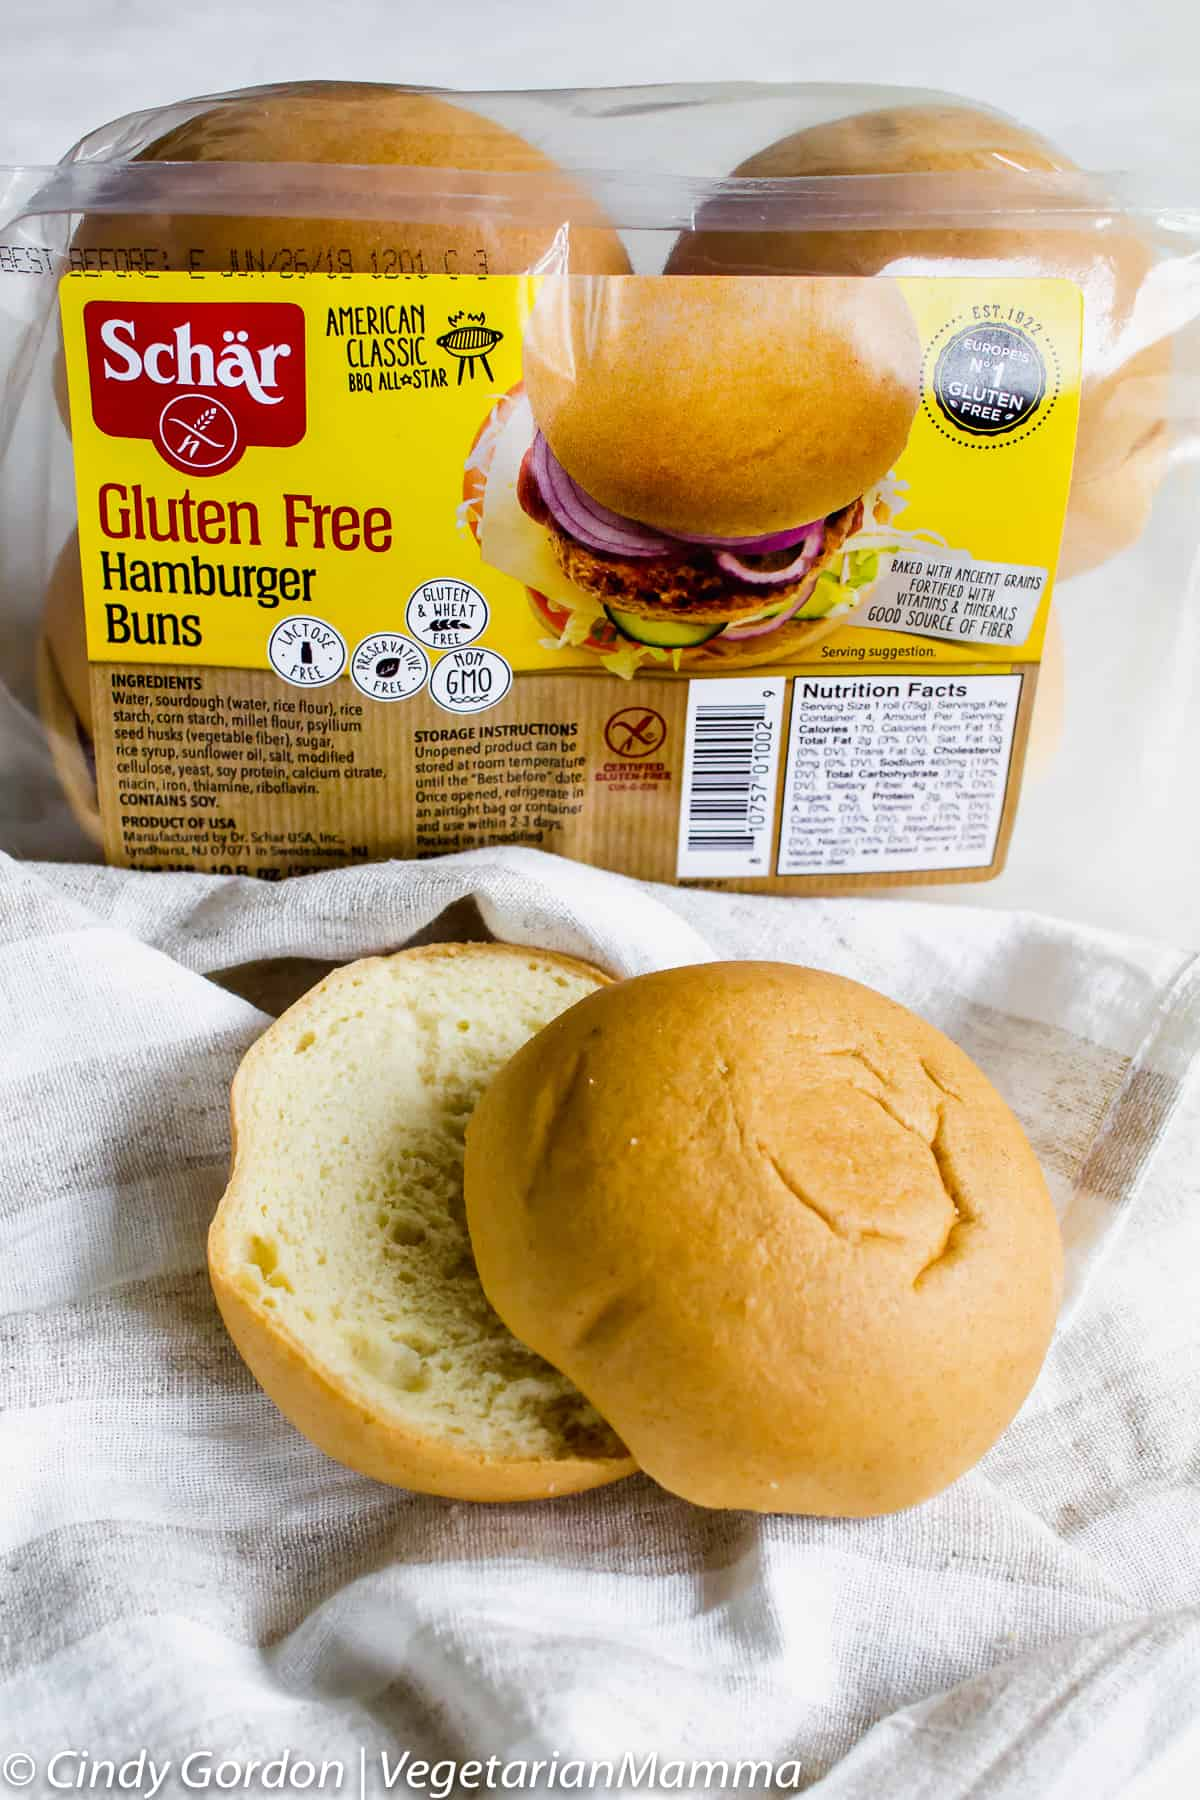 Schar makes the most delicious gluten-free buns which pair nicely with this tofu sandwich.